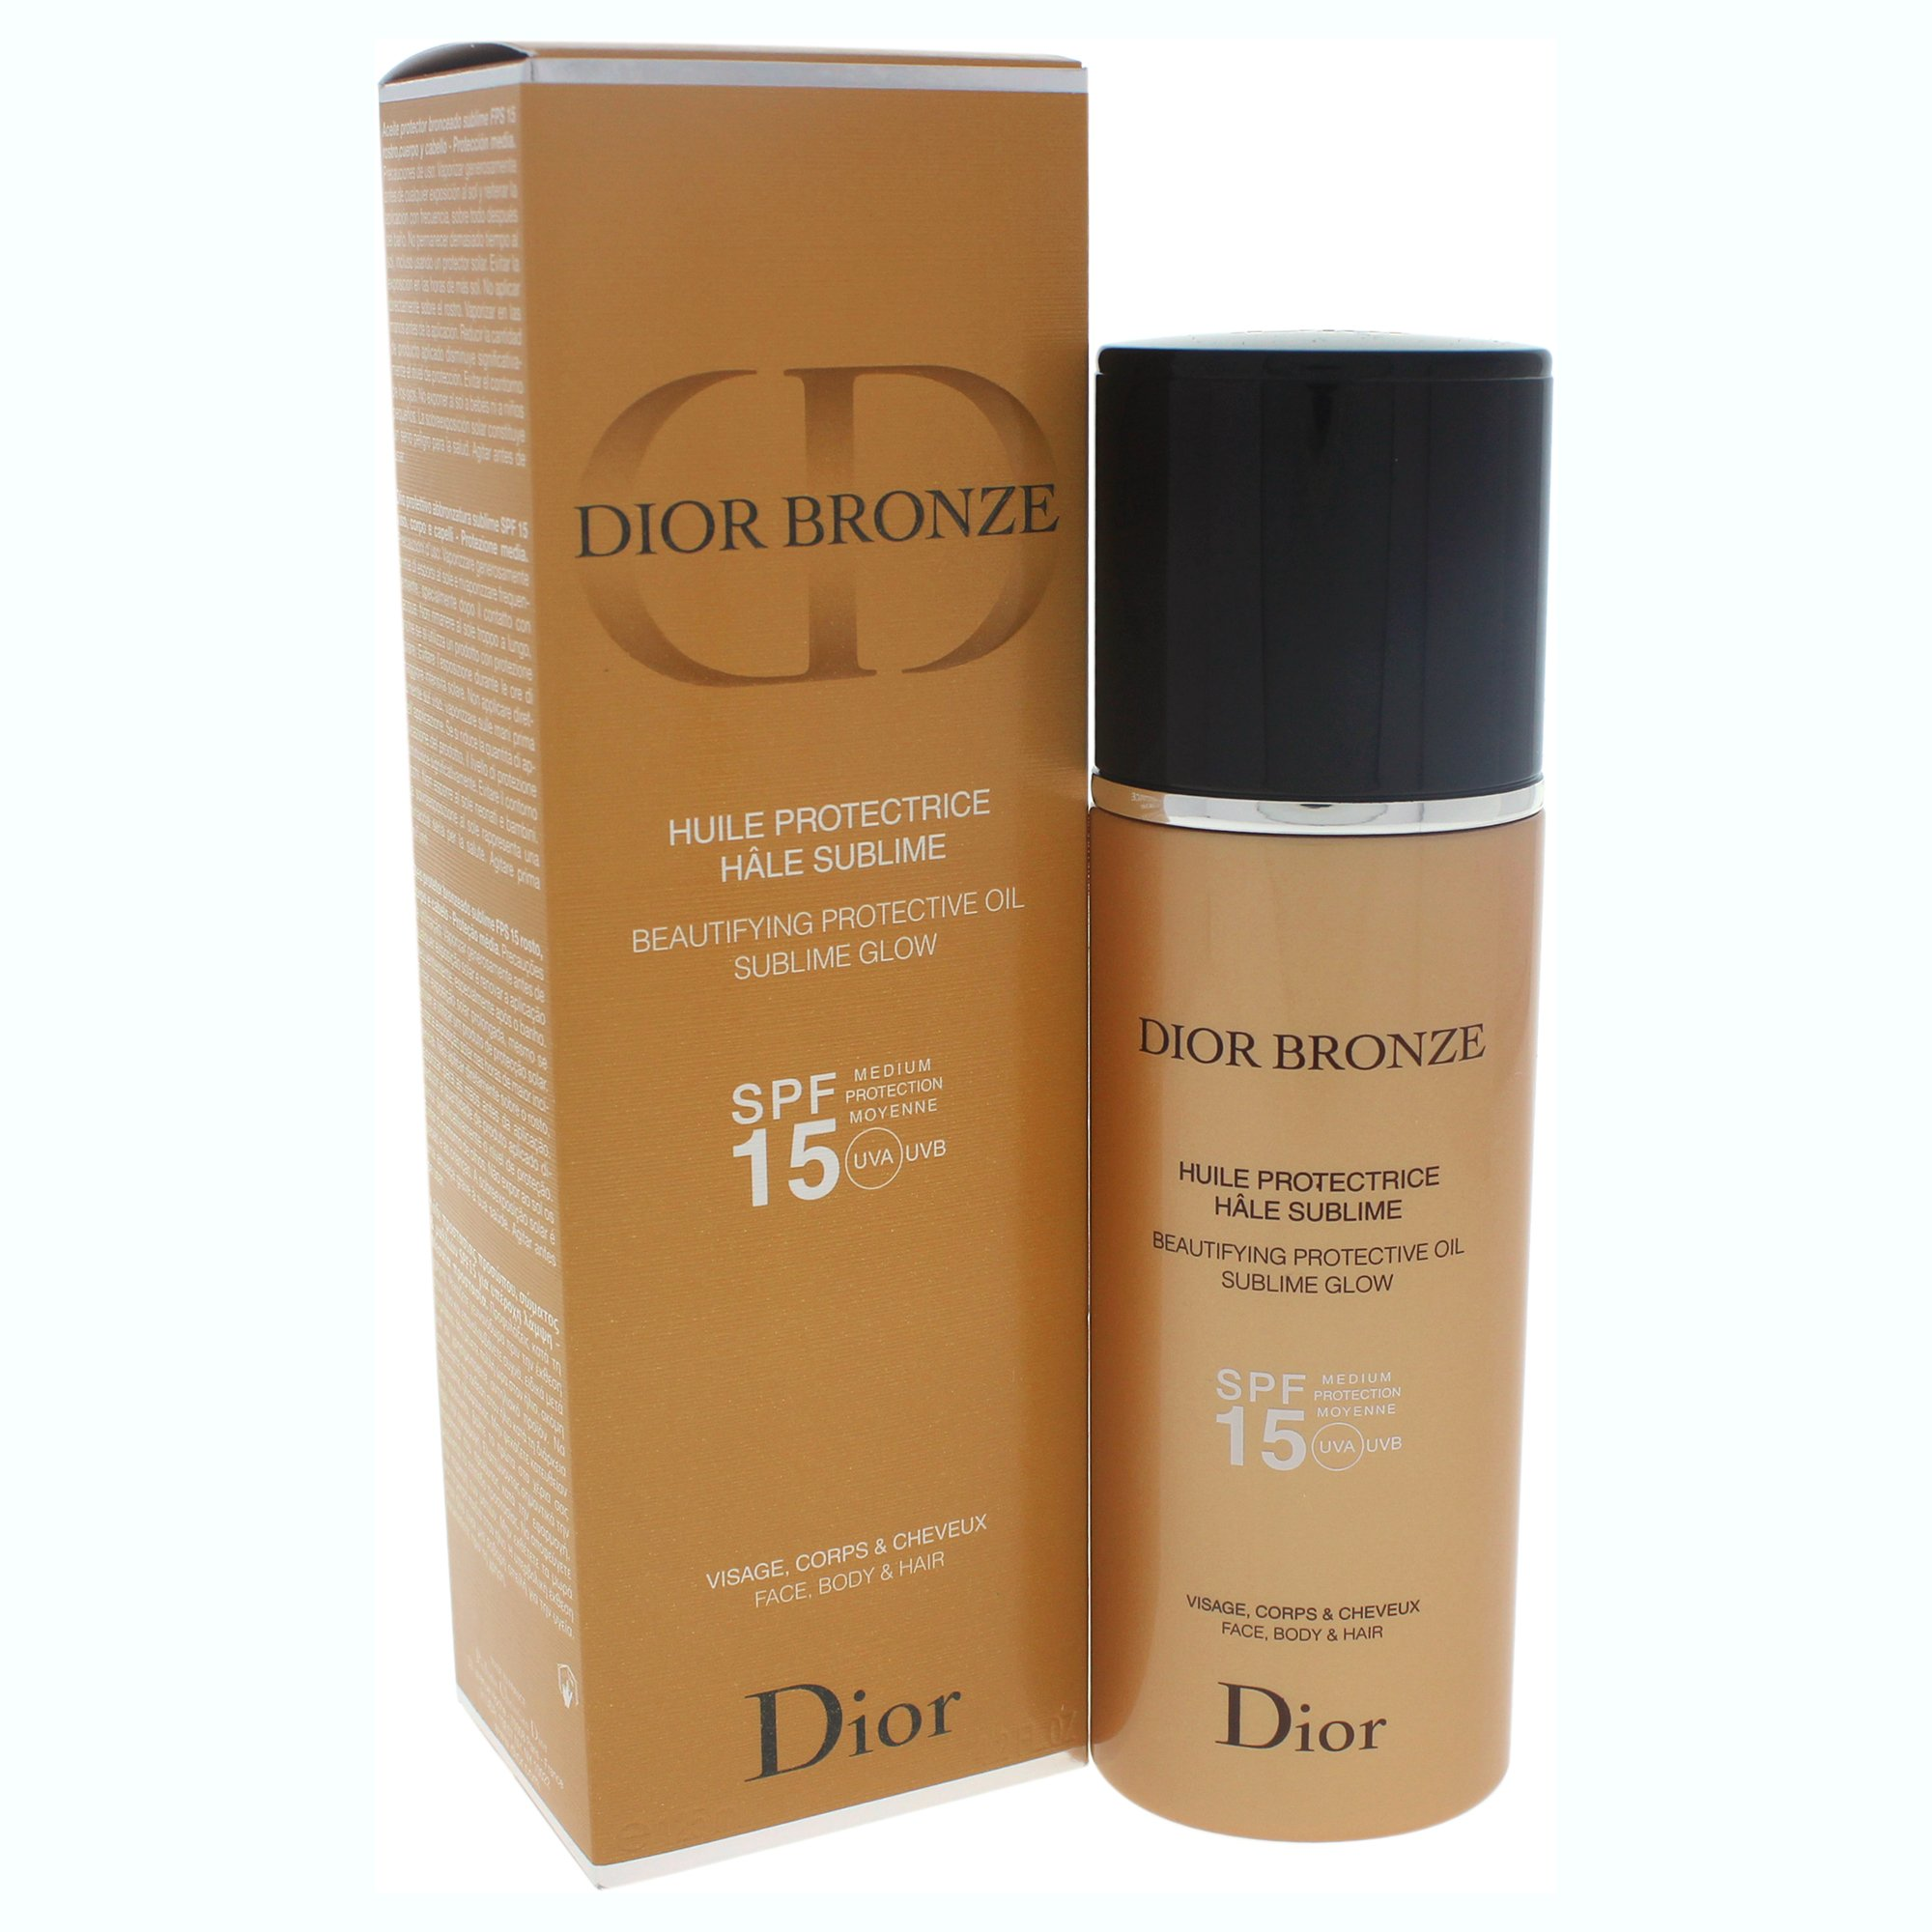 782f550f Buy Dior Bronze Beautifying Protective Oil Sublime Glow Spf15 Body ...